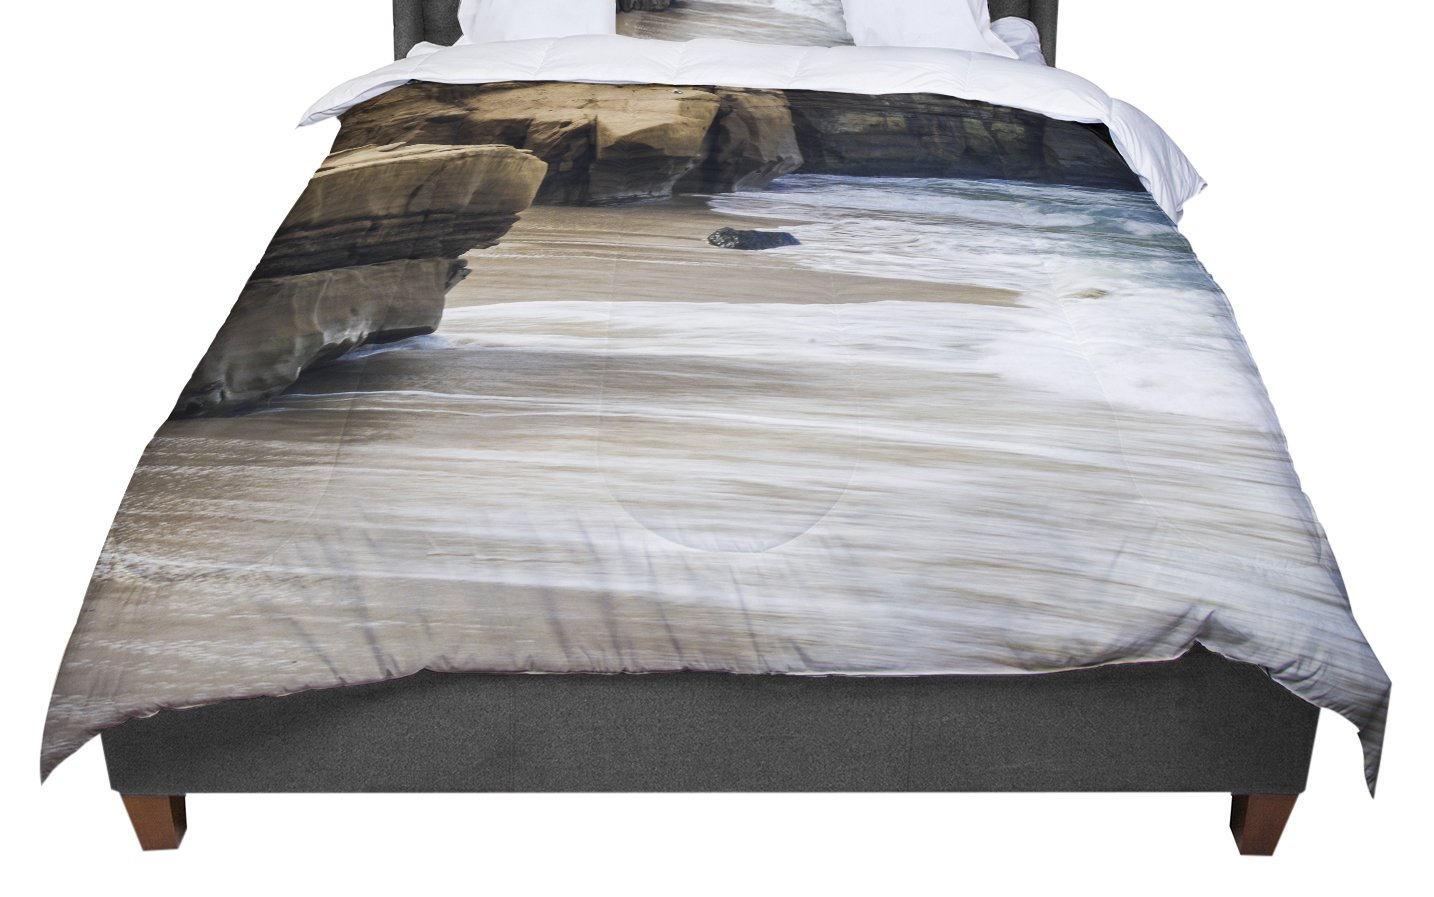 KESS InHouse Nick Nareshni 'La Jolla Cliffside' Sandstone White Photography Twin Comforter, 68' X 88'